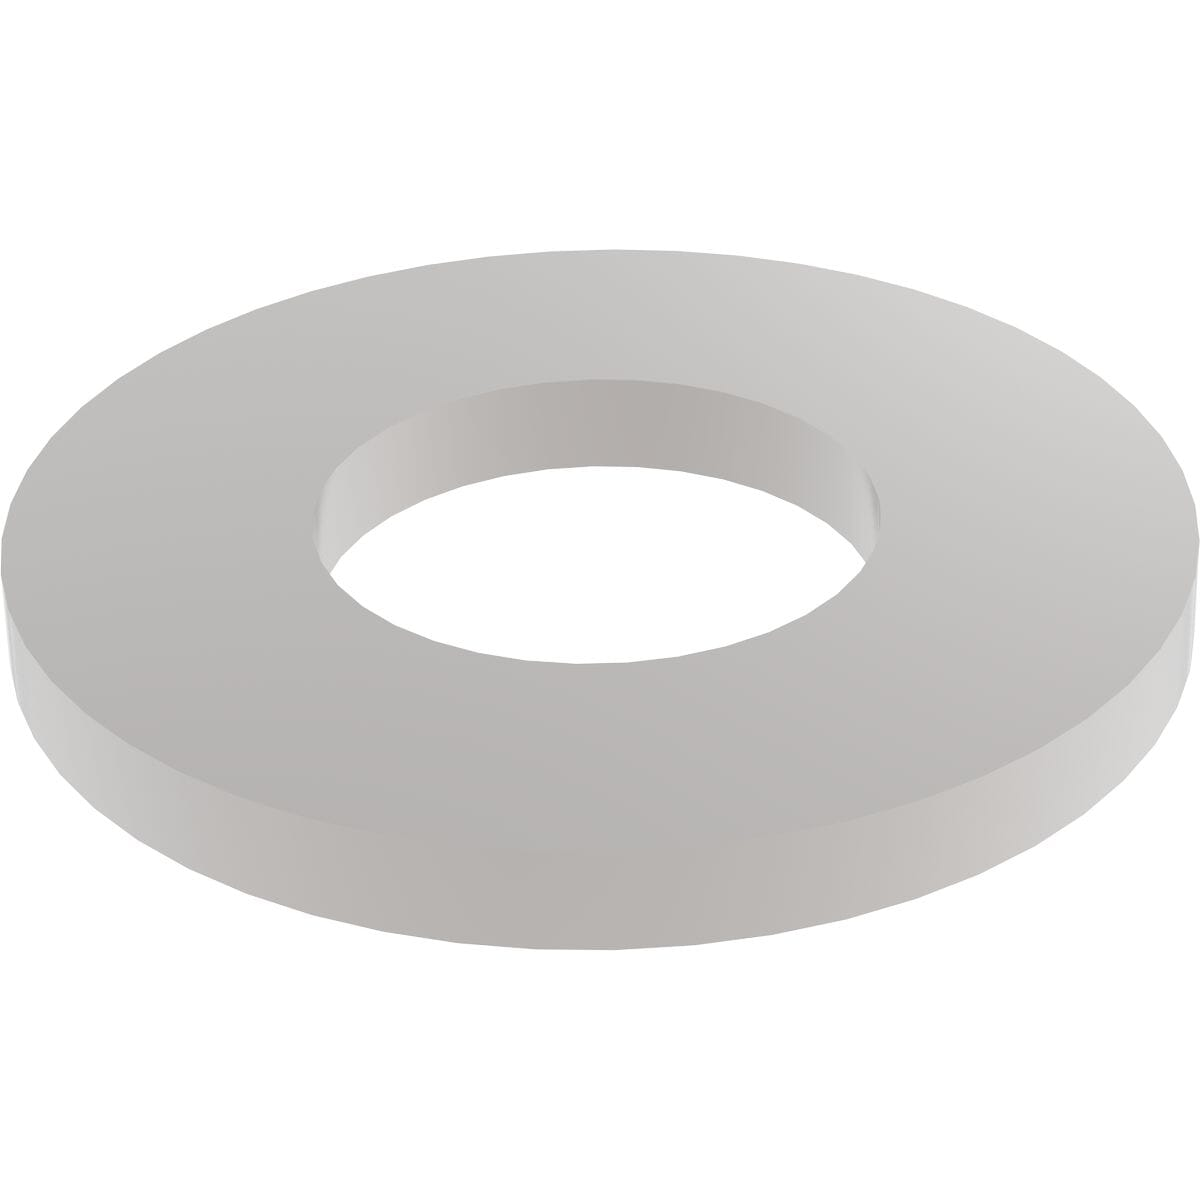 M3-3mm FORM A WASHERS FLAT WASHERS A2 304 STAINLESS STEEL DIN 125